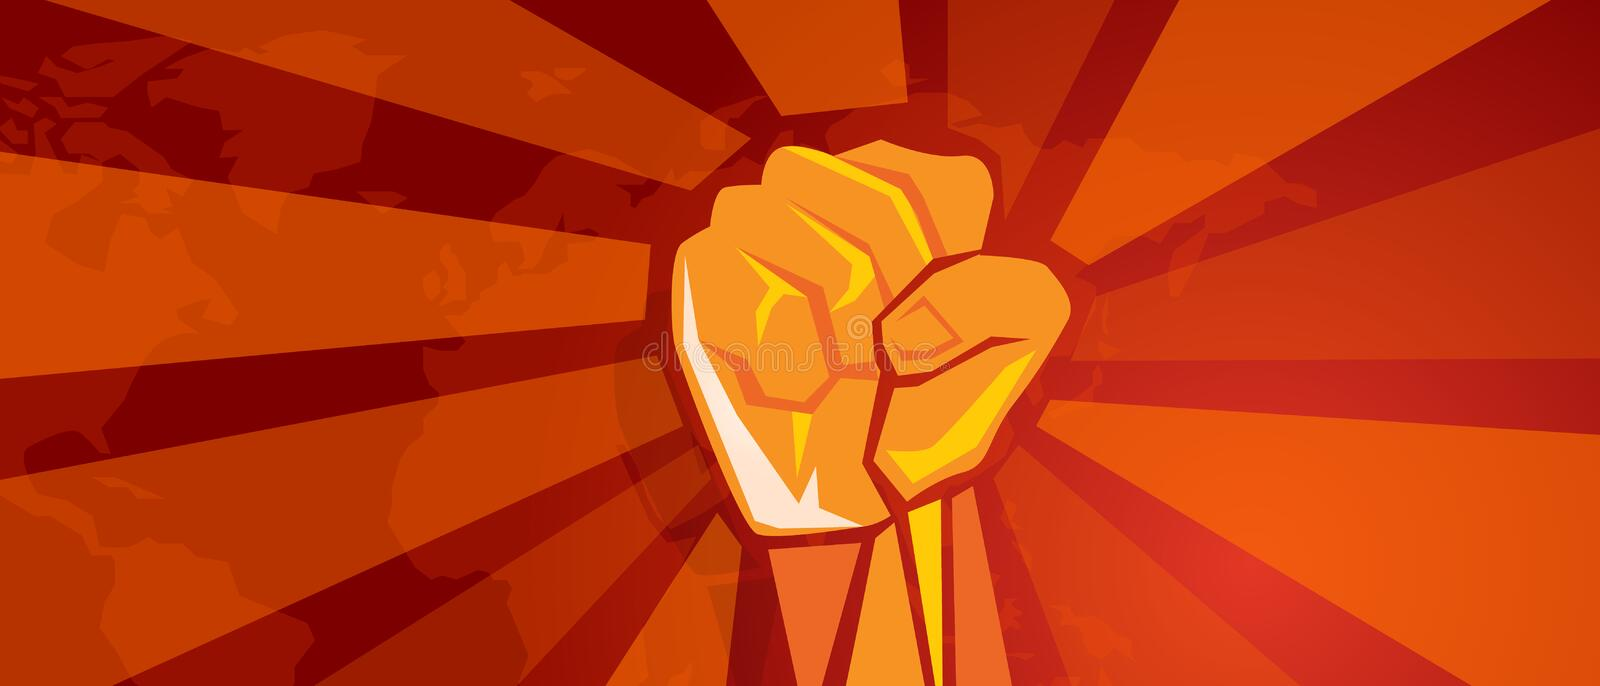 Hand fist revolution symbol of resistance fight aggressive retro communism propaganda poster style in red with world map. Background vector royalty free illustration